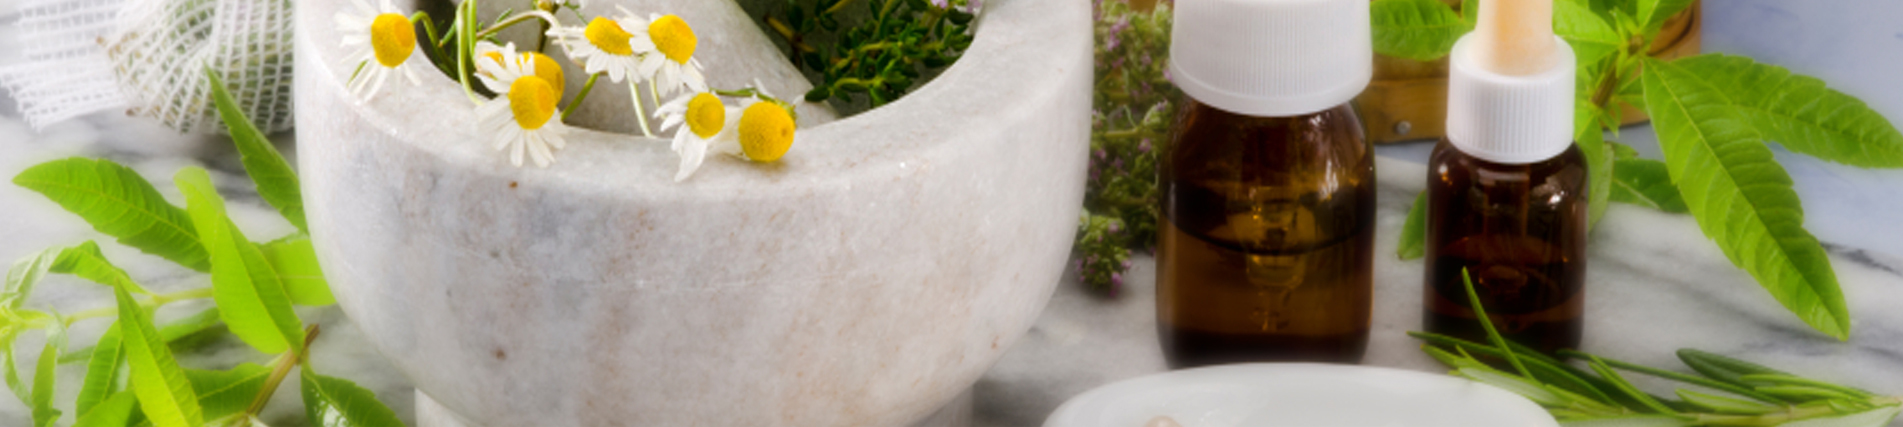 Allied Health and Naturopathy